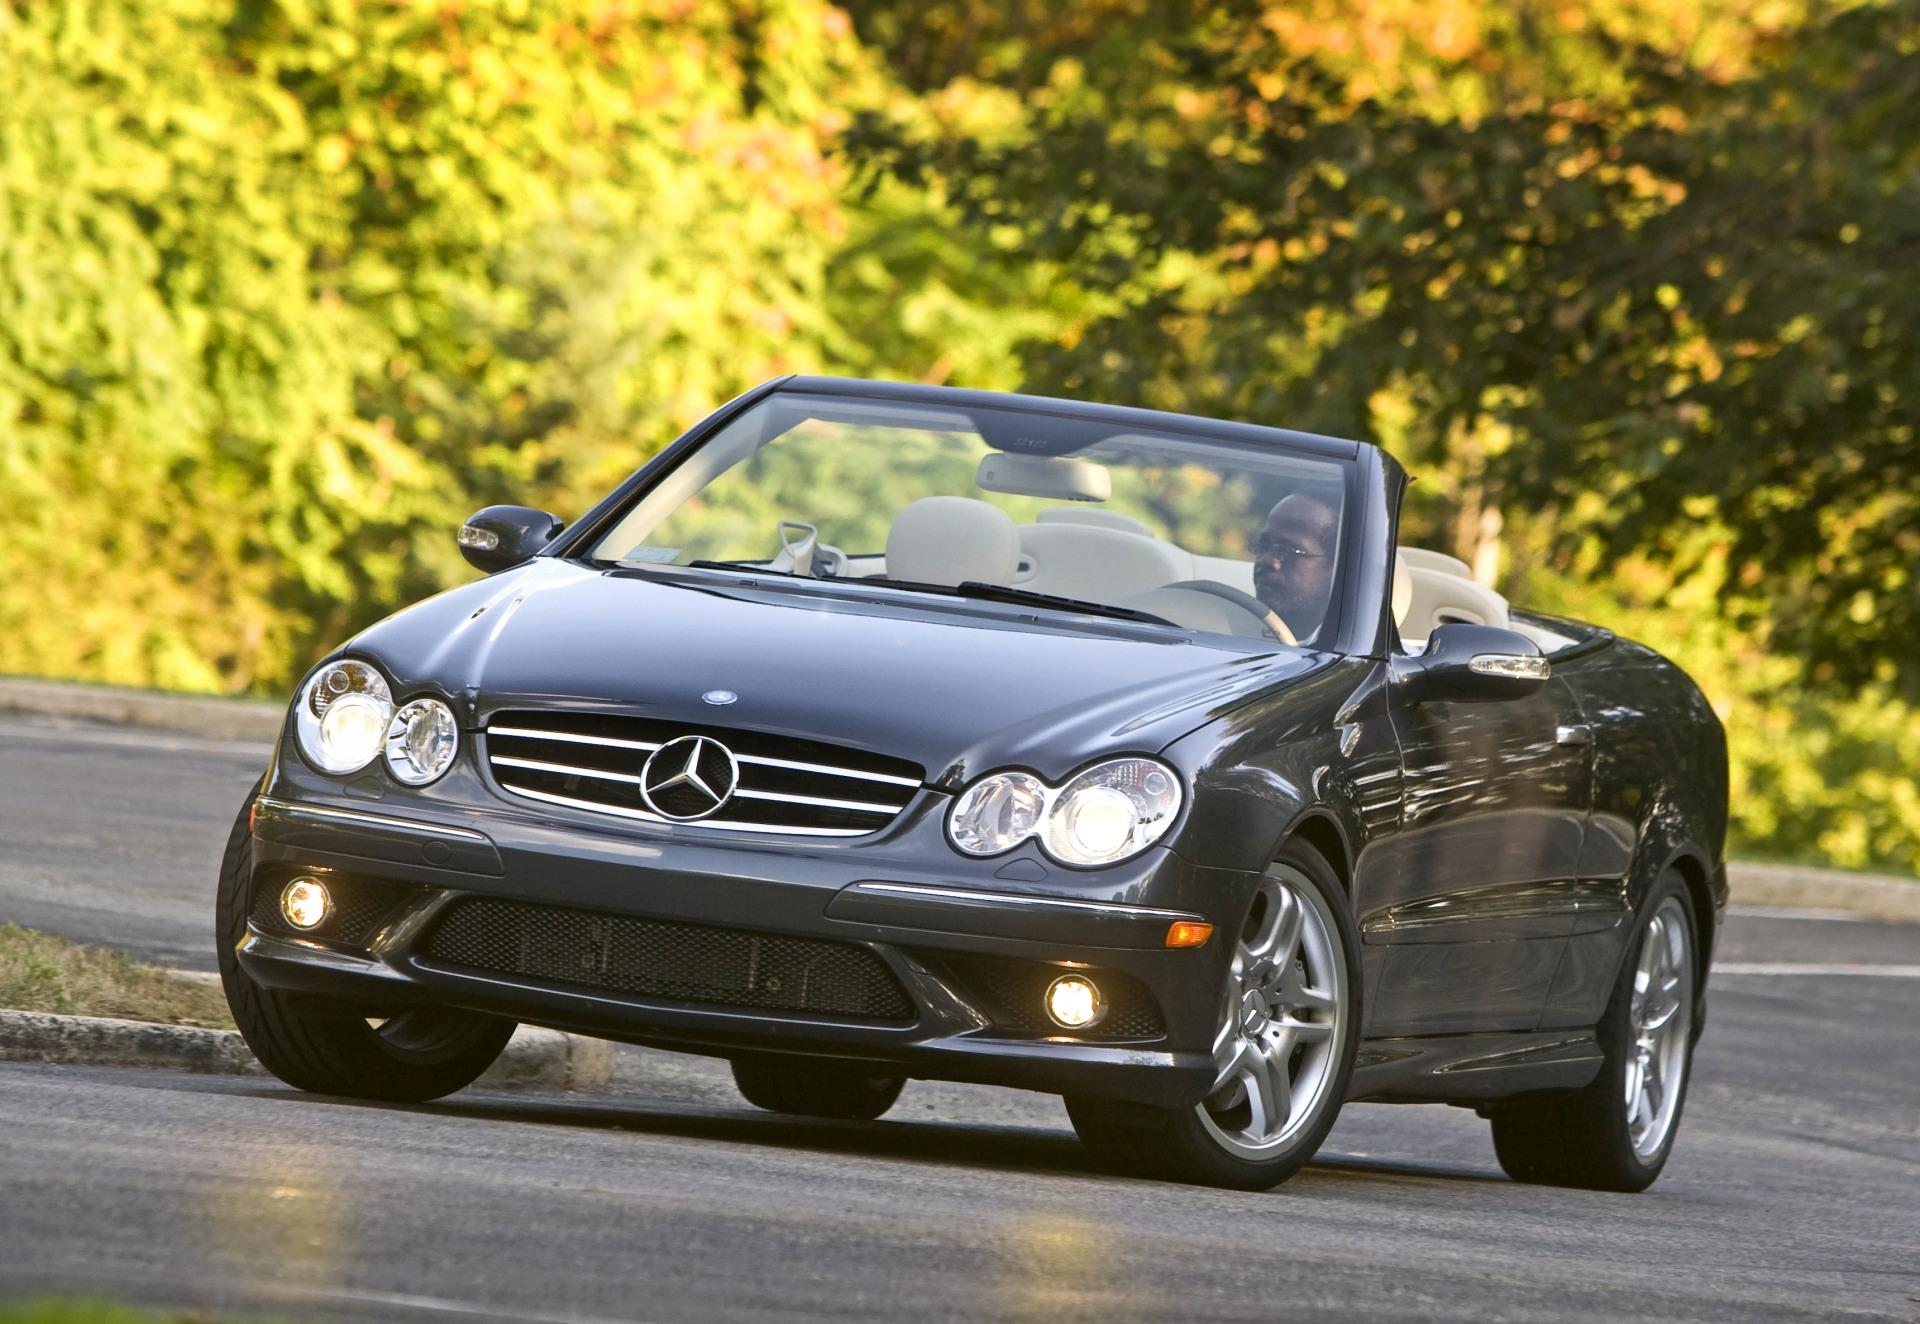 2009 mercedes benz clk class for Mercedes benz clk 2009